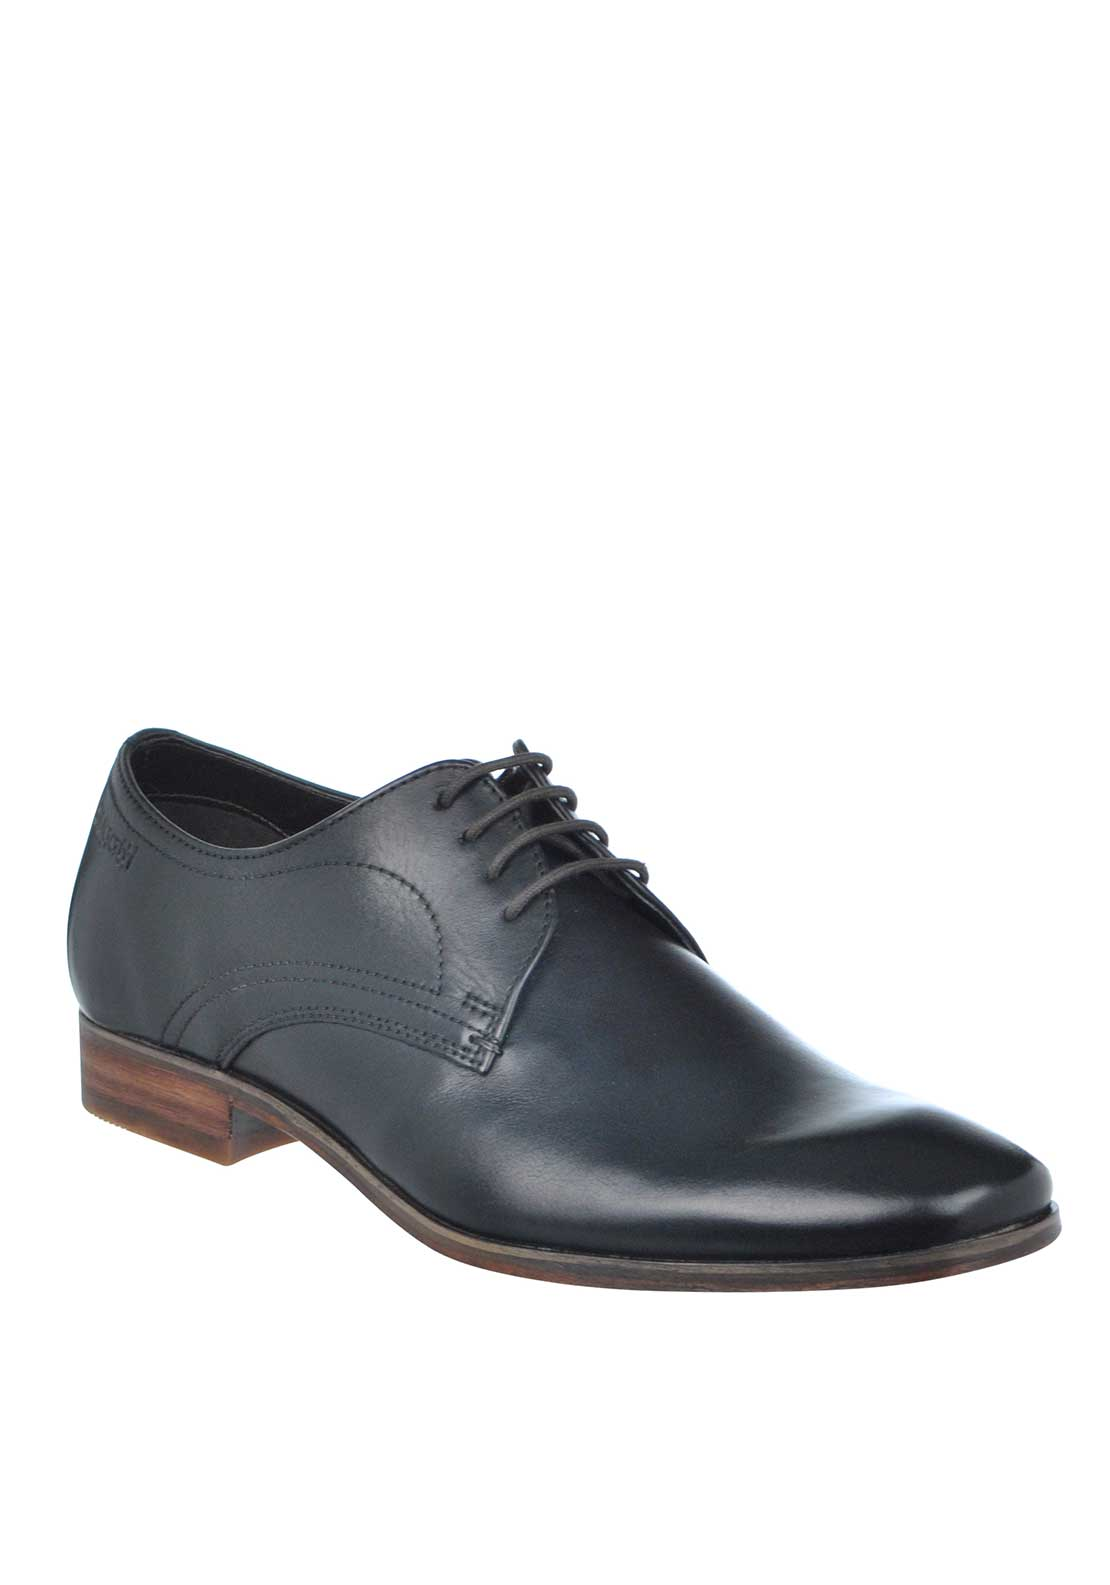 Bugatti Lace Up Leather Formal Shoe, Black